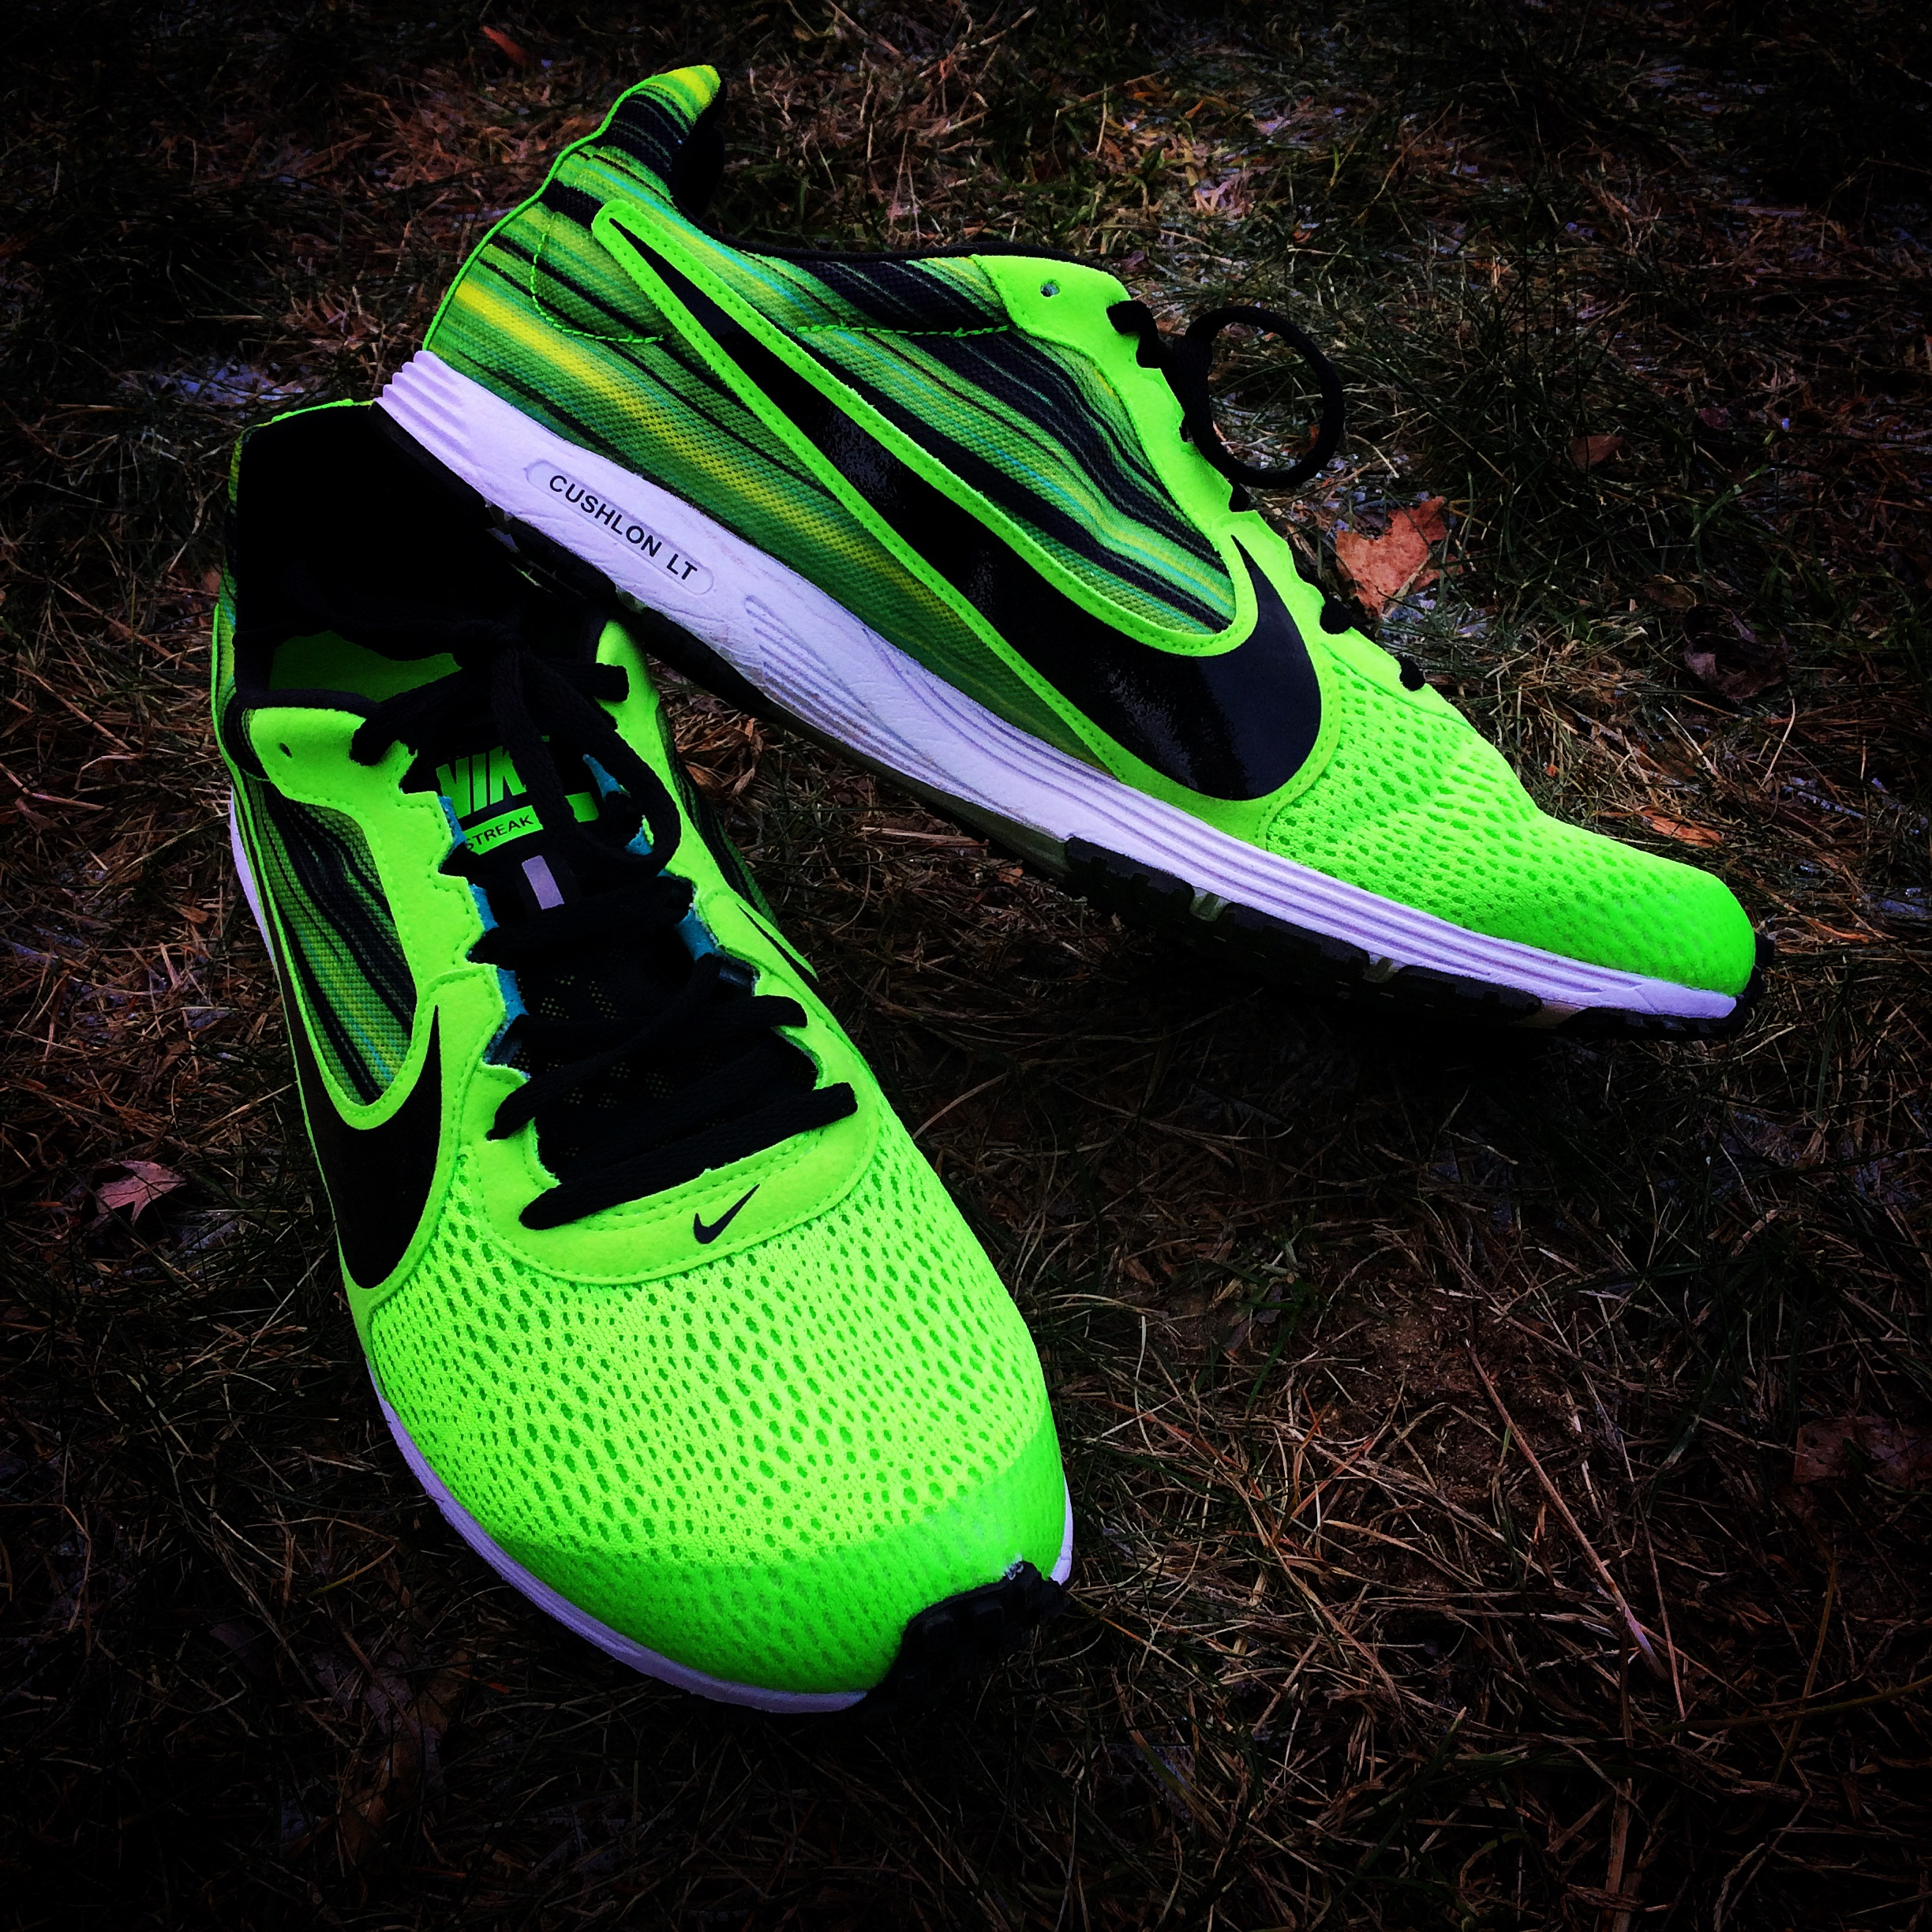 Nike Zoom Flat  Racing Shoes Review